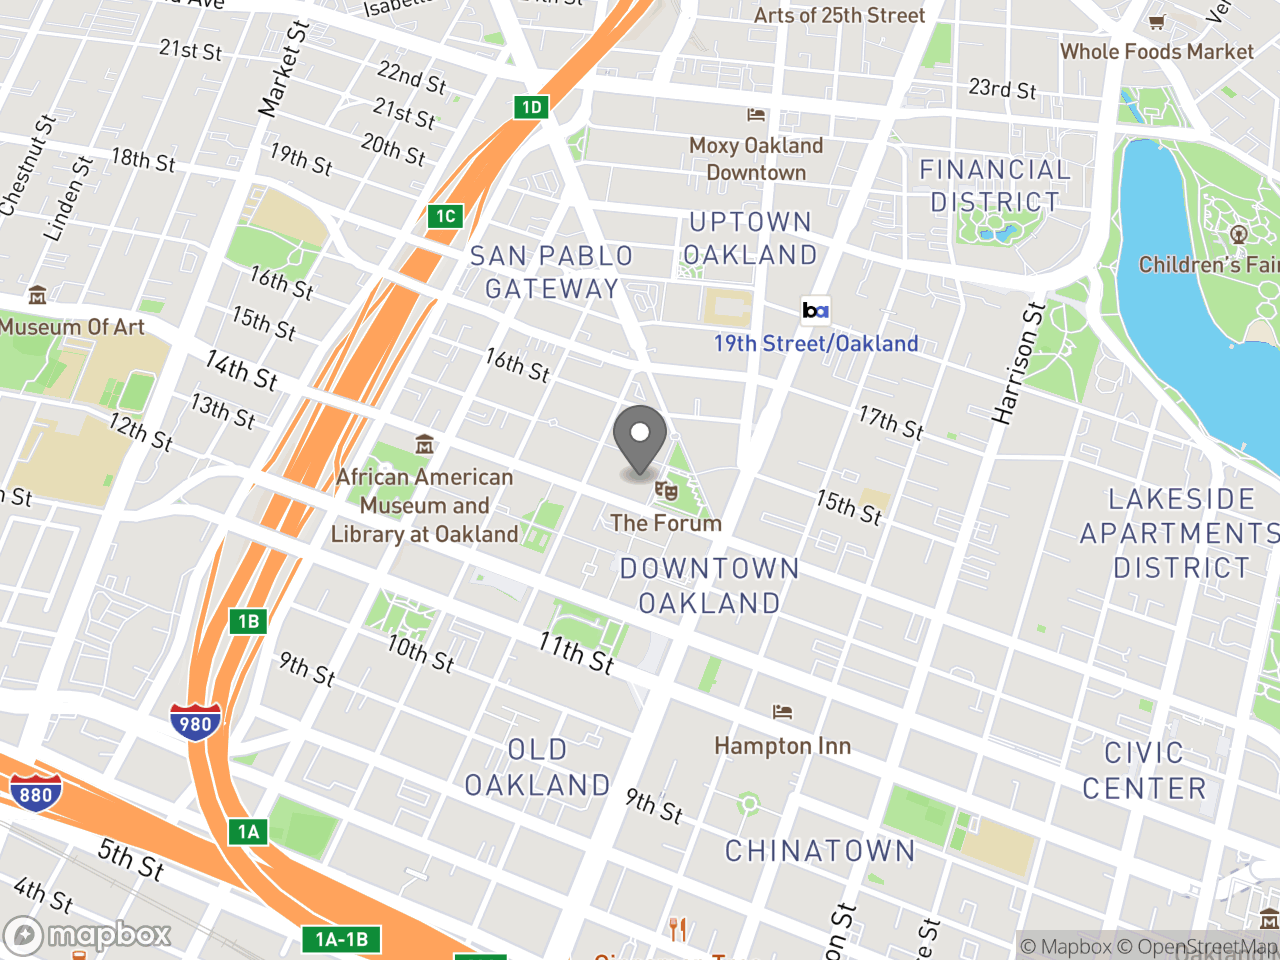 Map location for Bicyclist and Pedestrian Advisory Commission (BPAC) Meeting, March 15, 2018, located at 1 Frank H Ogawa Plaza in Oakland, CA 94612